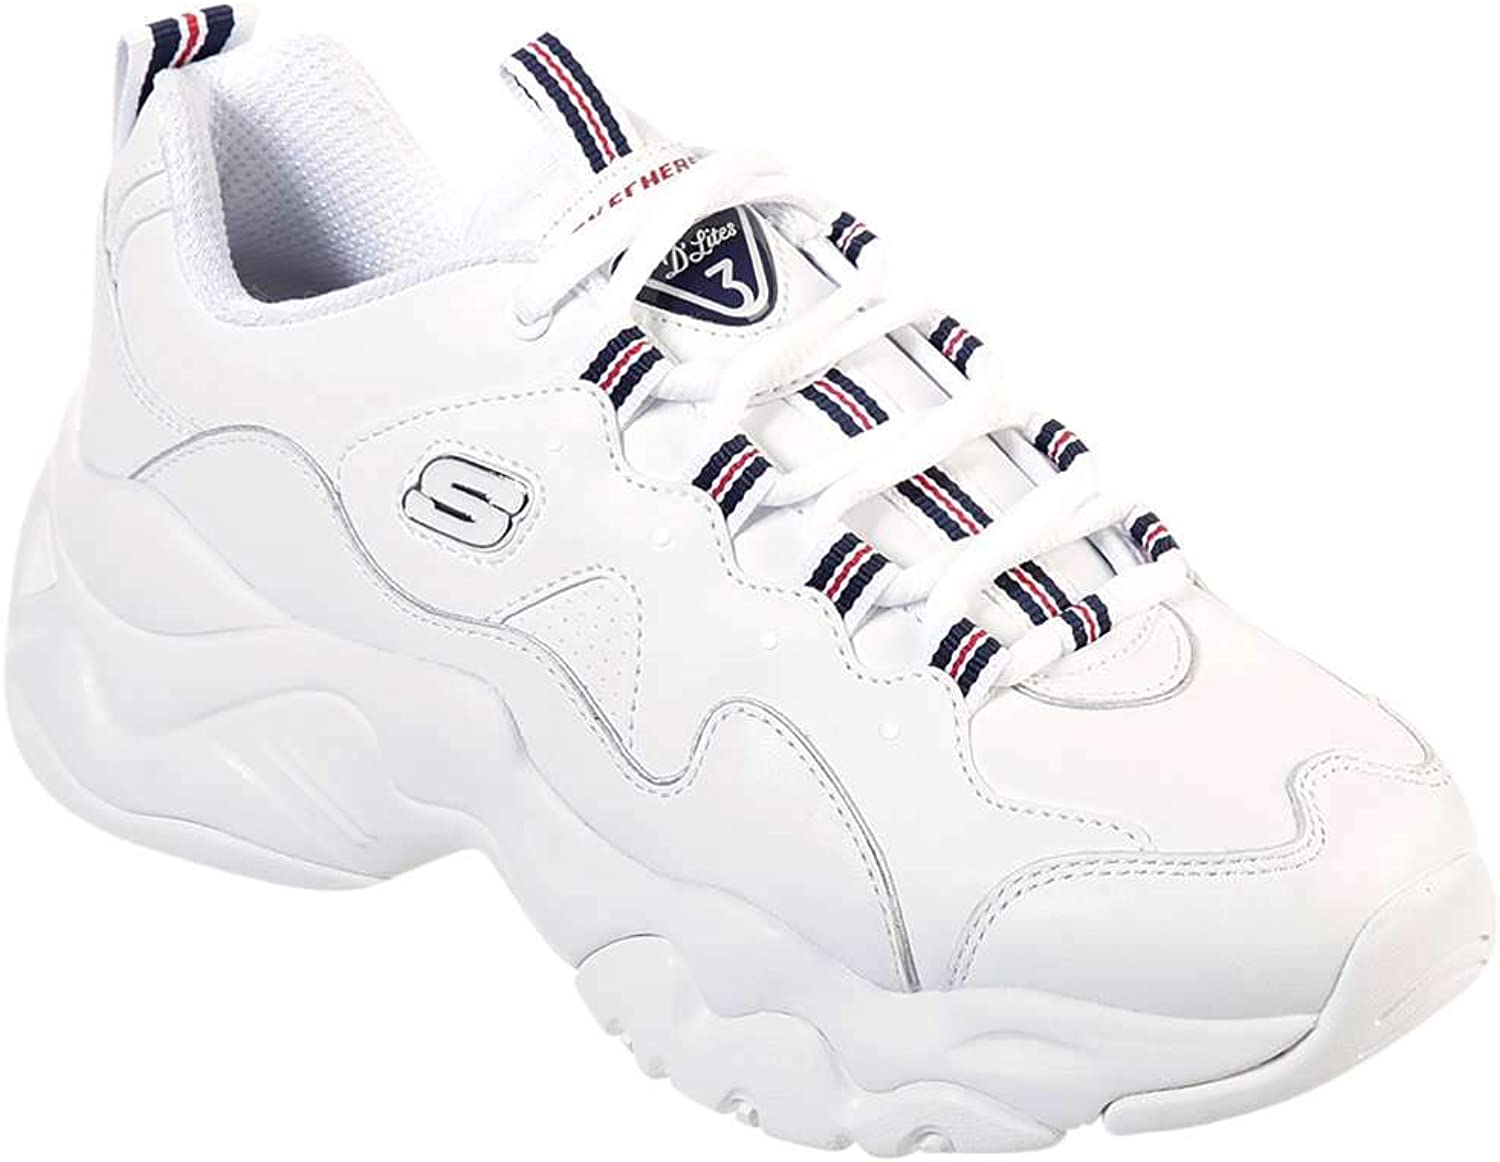 Skechers Women's D-Lites 3 Proven Force Fashion Sneakers White Navy